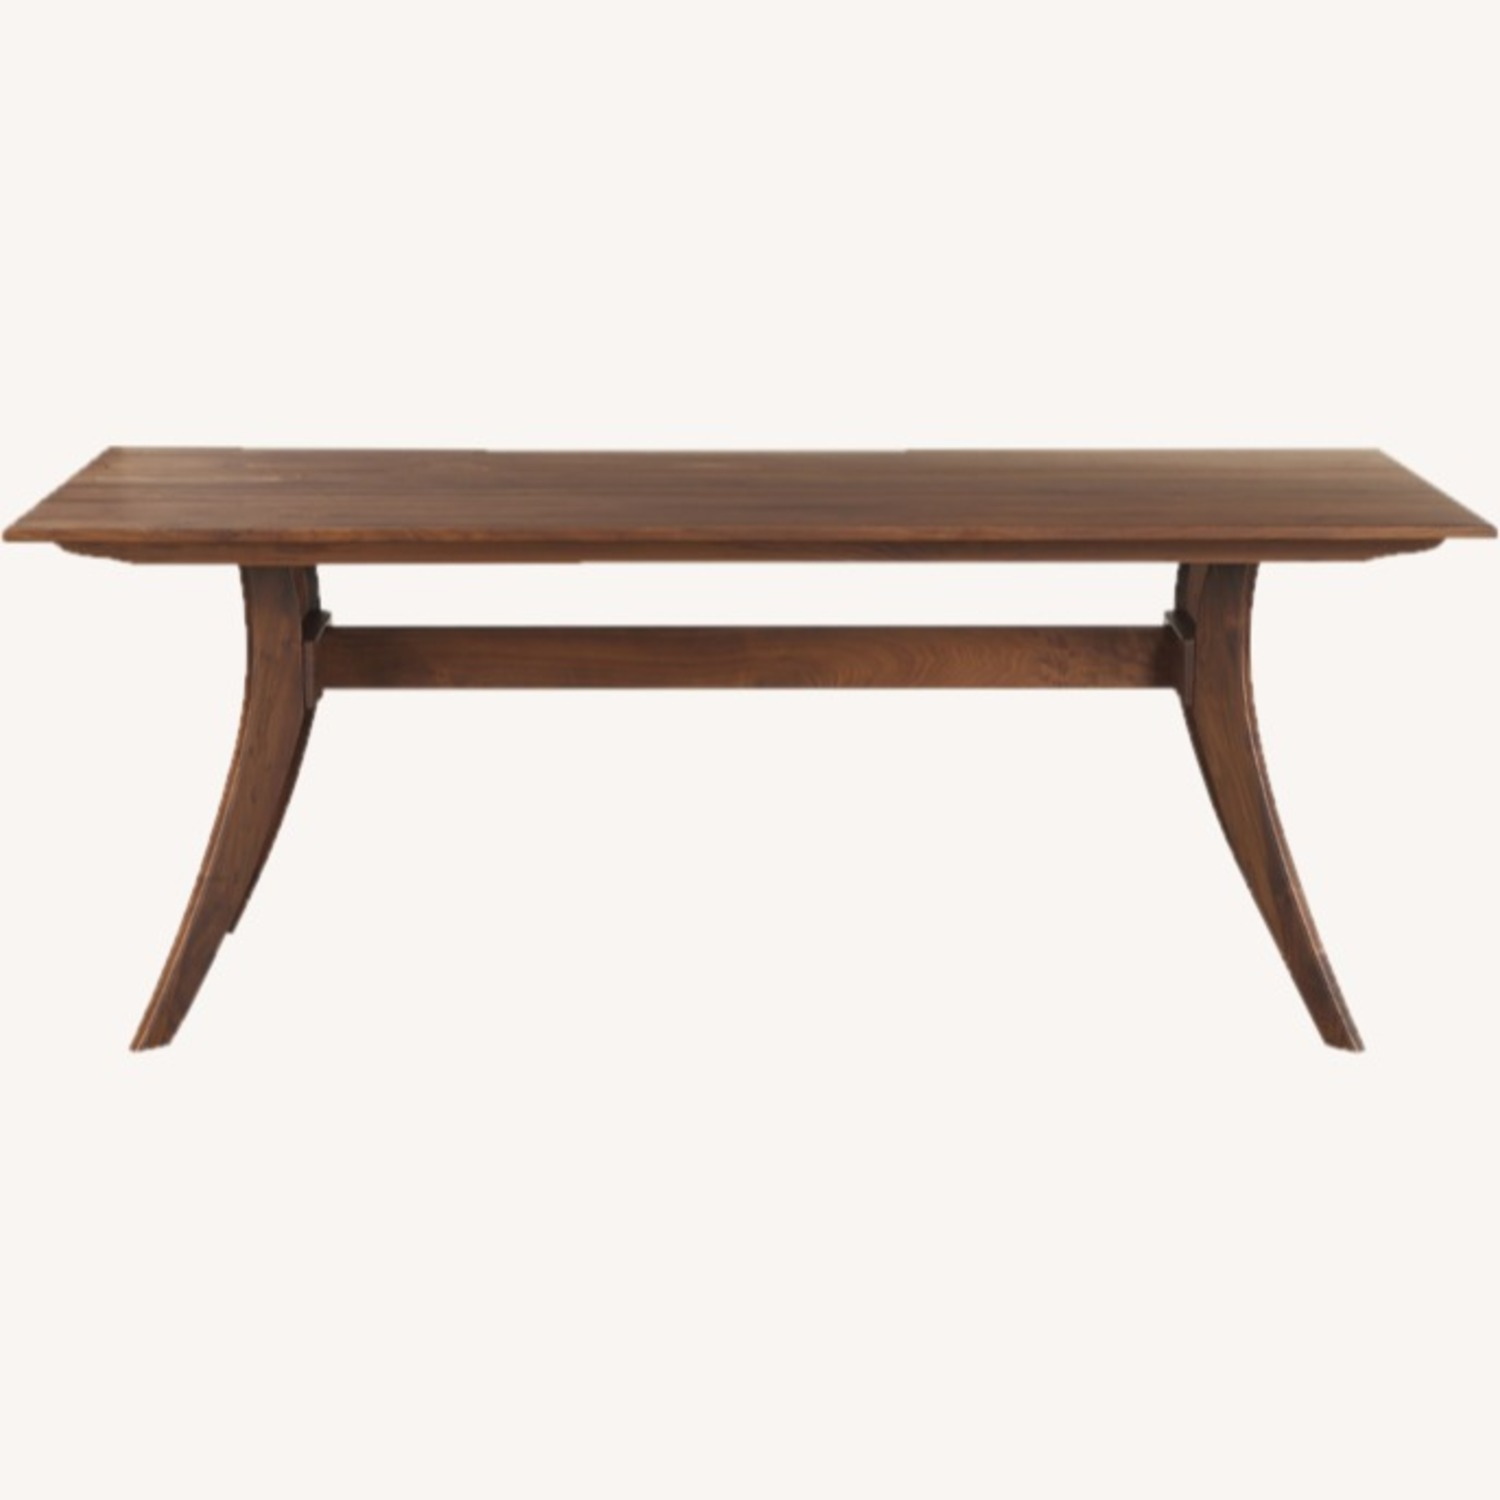 """Wayfair 63"""" Transitional Solid Wood Dining Table - image-1"""